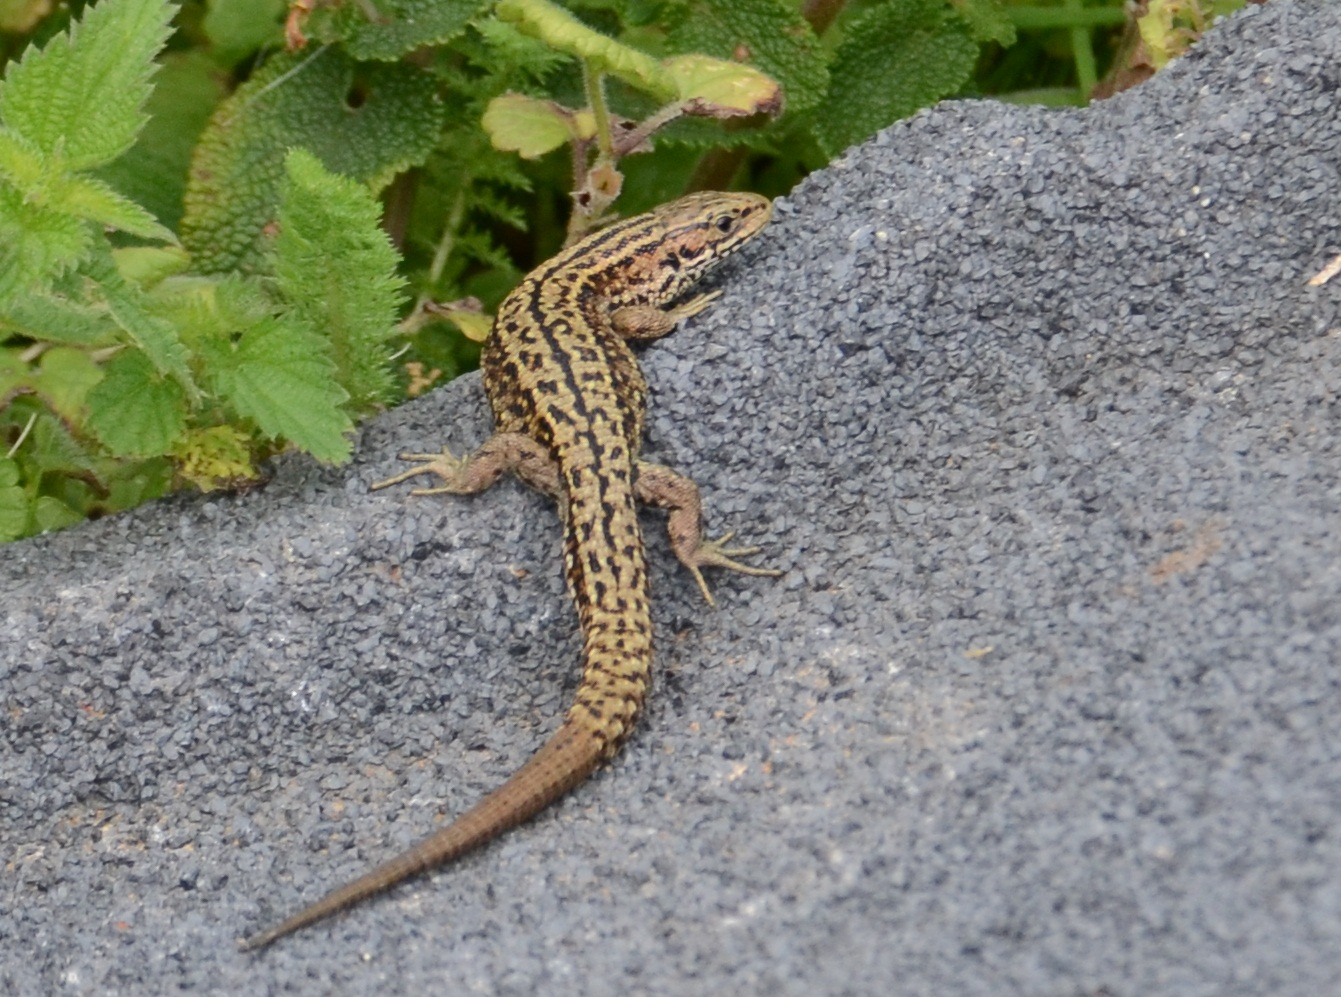 weston under lizard latin singles The cheapest way to get from birmingham to weston under lizard costs only £5, and the quickest way takes just 32 mins find the travel option that best suits you.